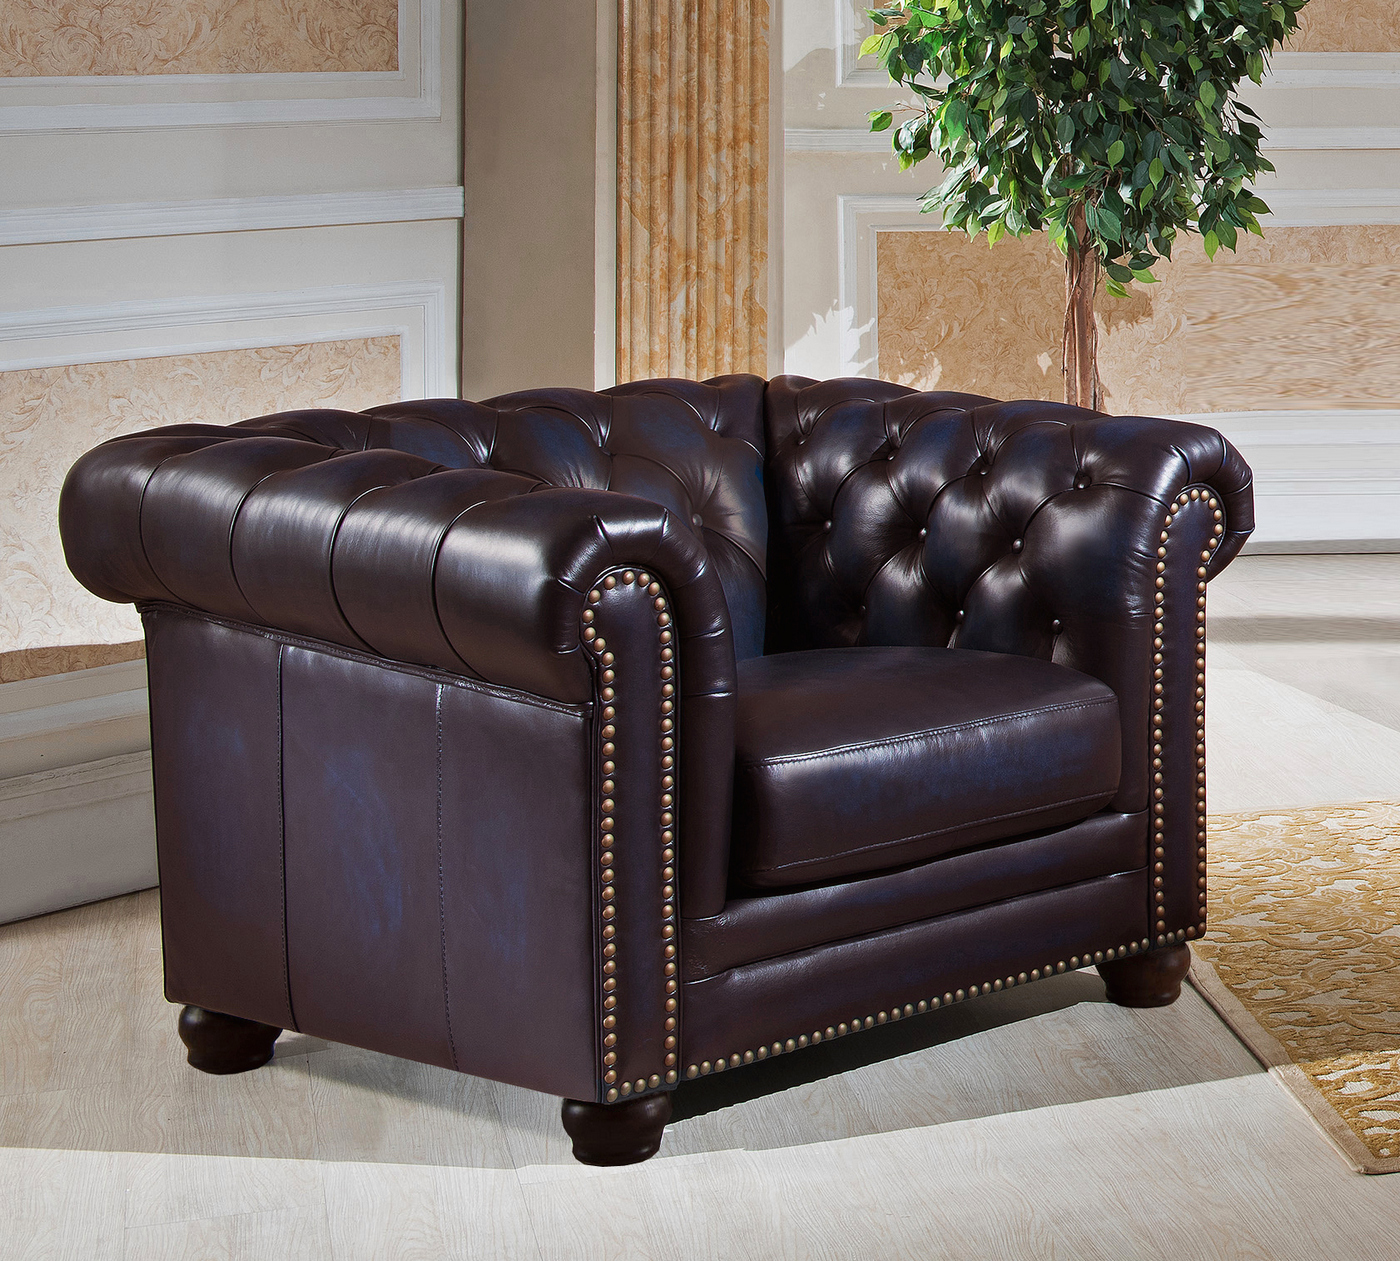 Genuine Leather Sectional Sofa Canada: Dynasty 100% Genuine Leather Chesterfield Sofa & Two